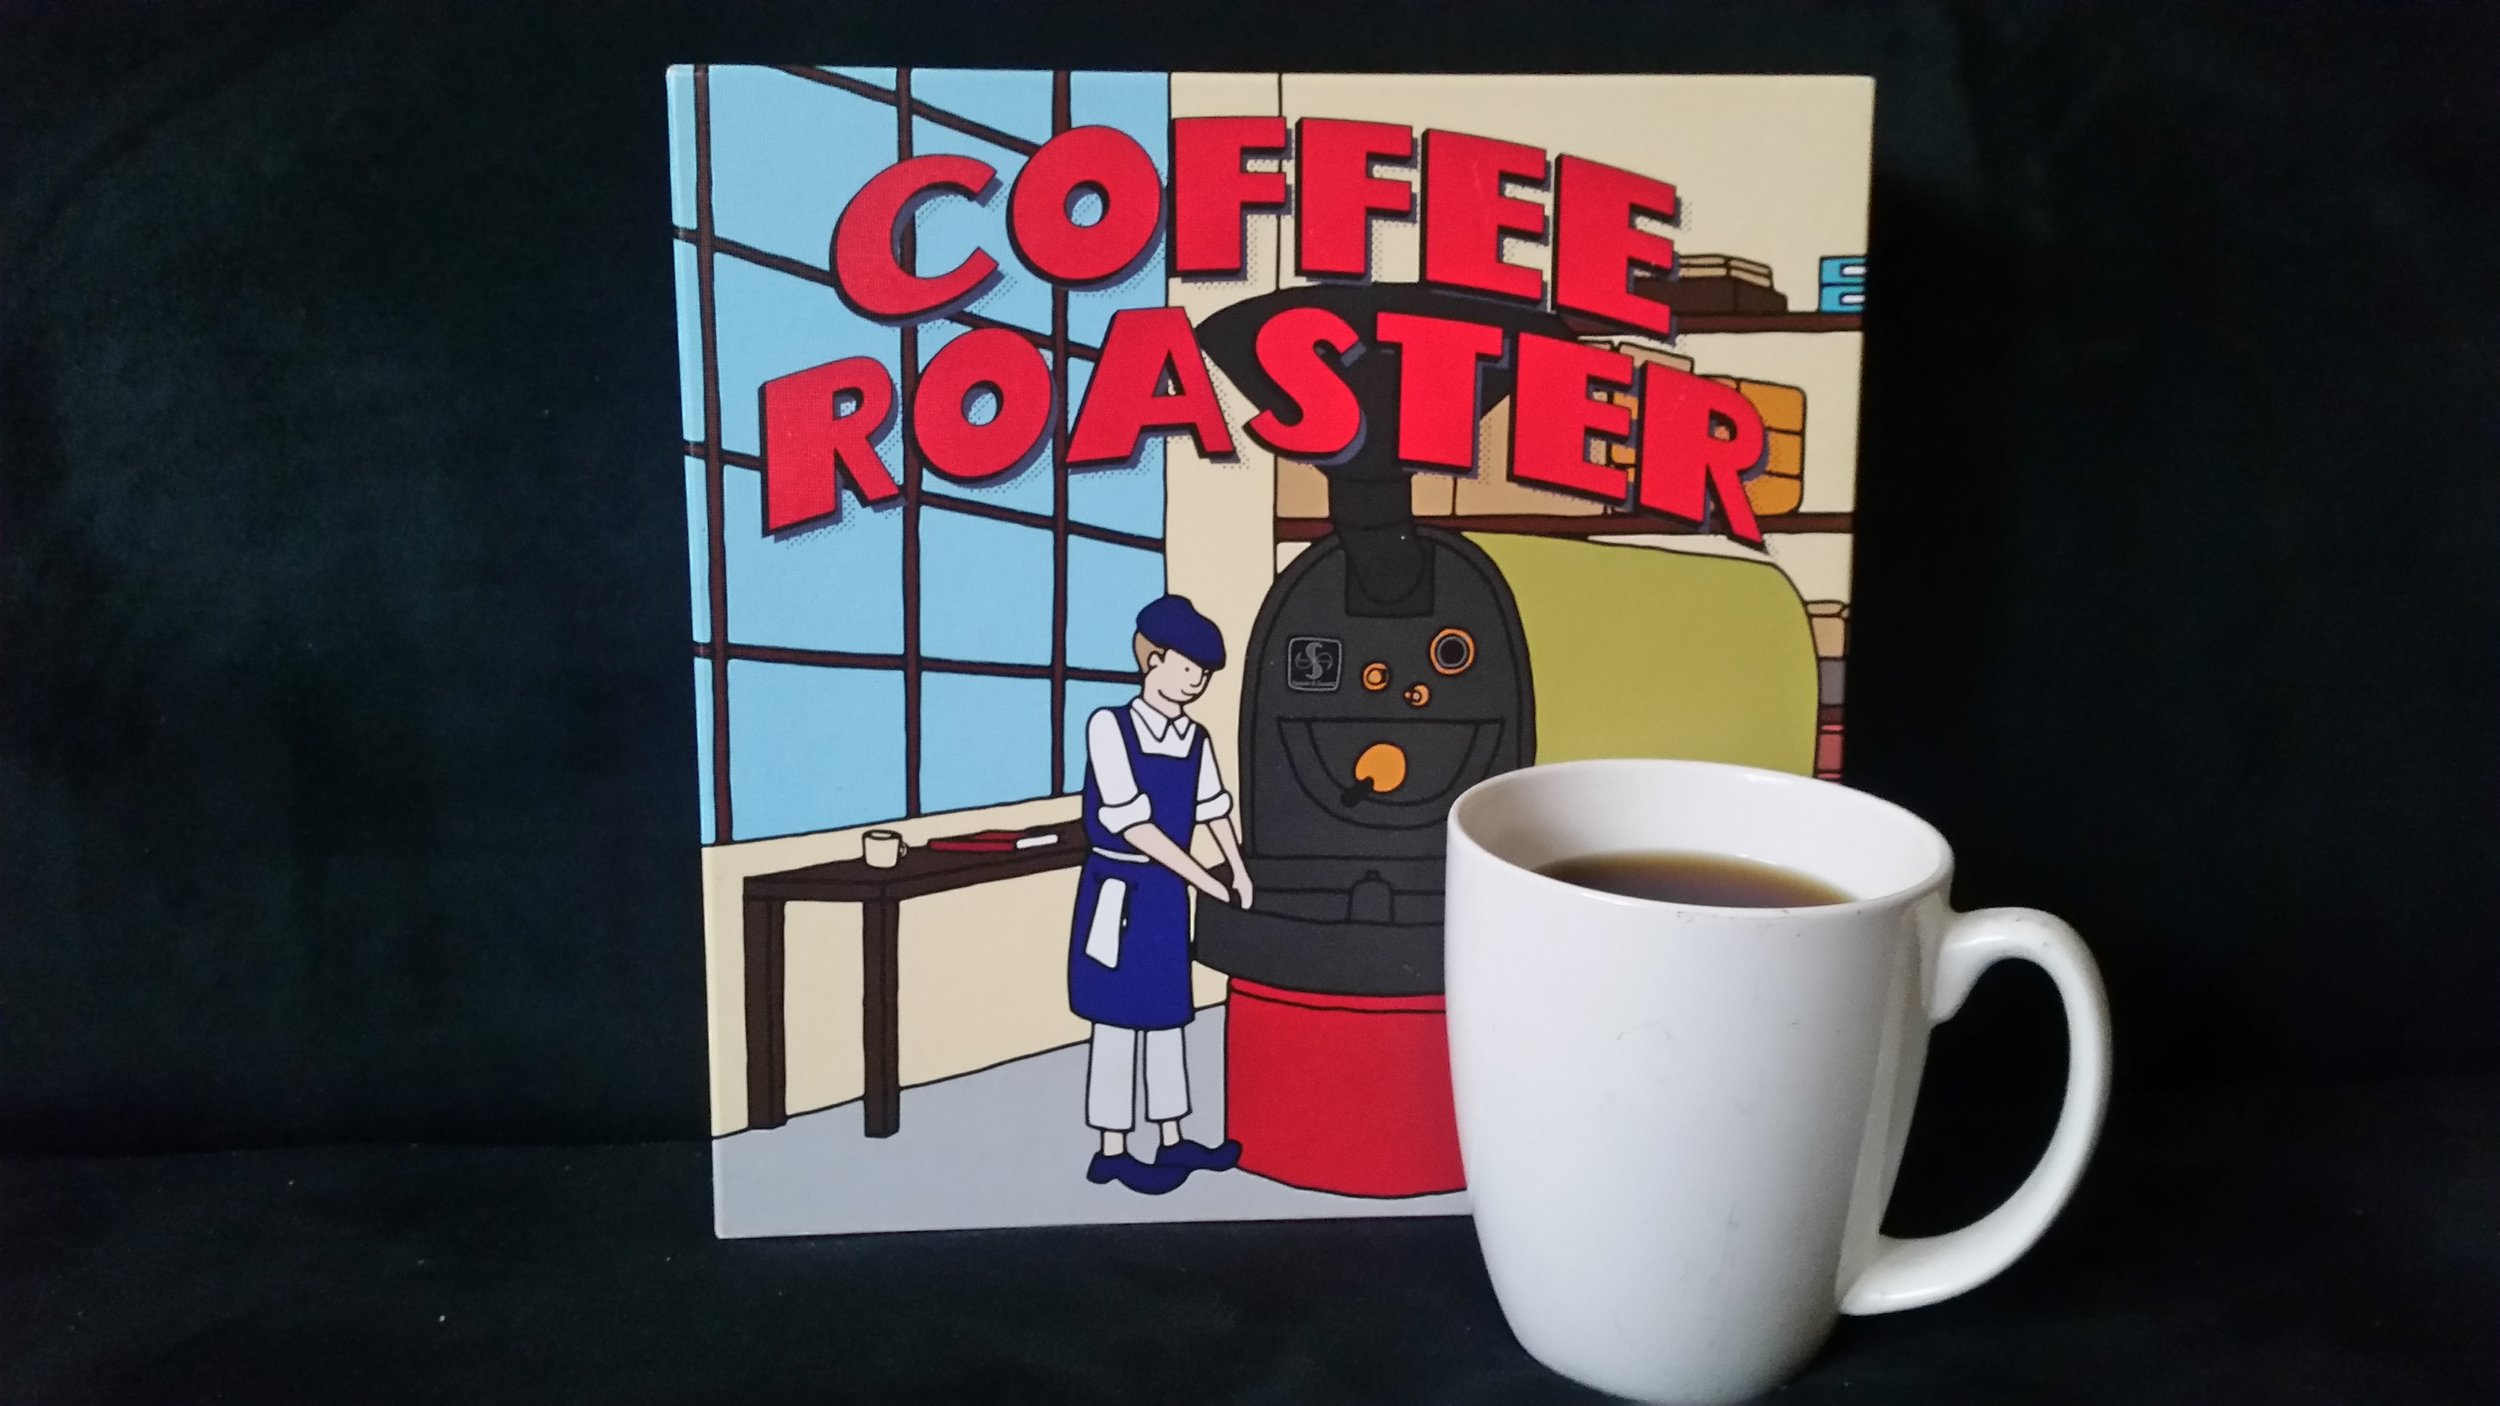 The Unique Blend A Coffee Roaster Review Cardboard Reality